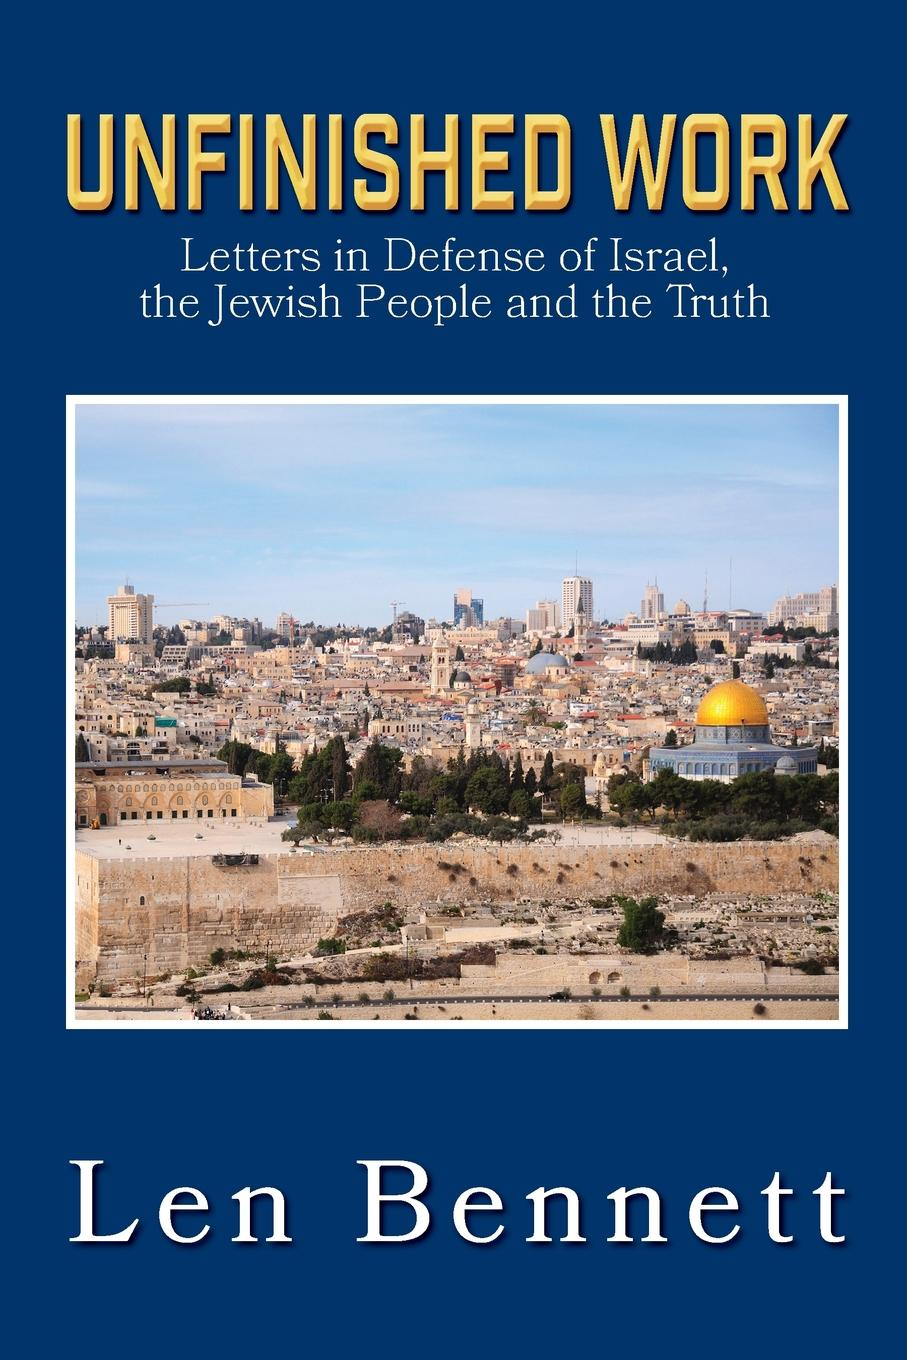 Len Bennett Unfinished Work. Letters in Defense of Israel, the Jewish People and the Truth